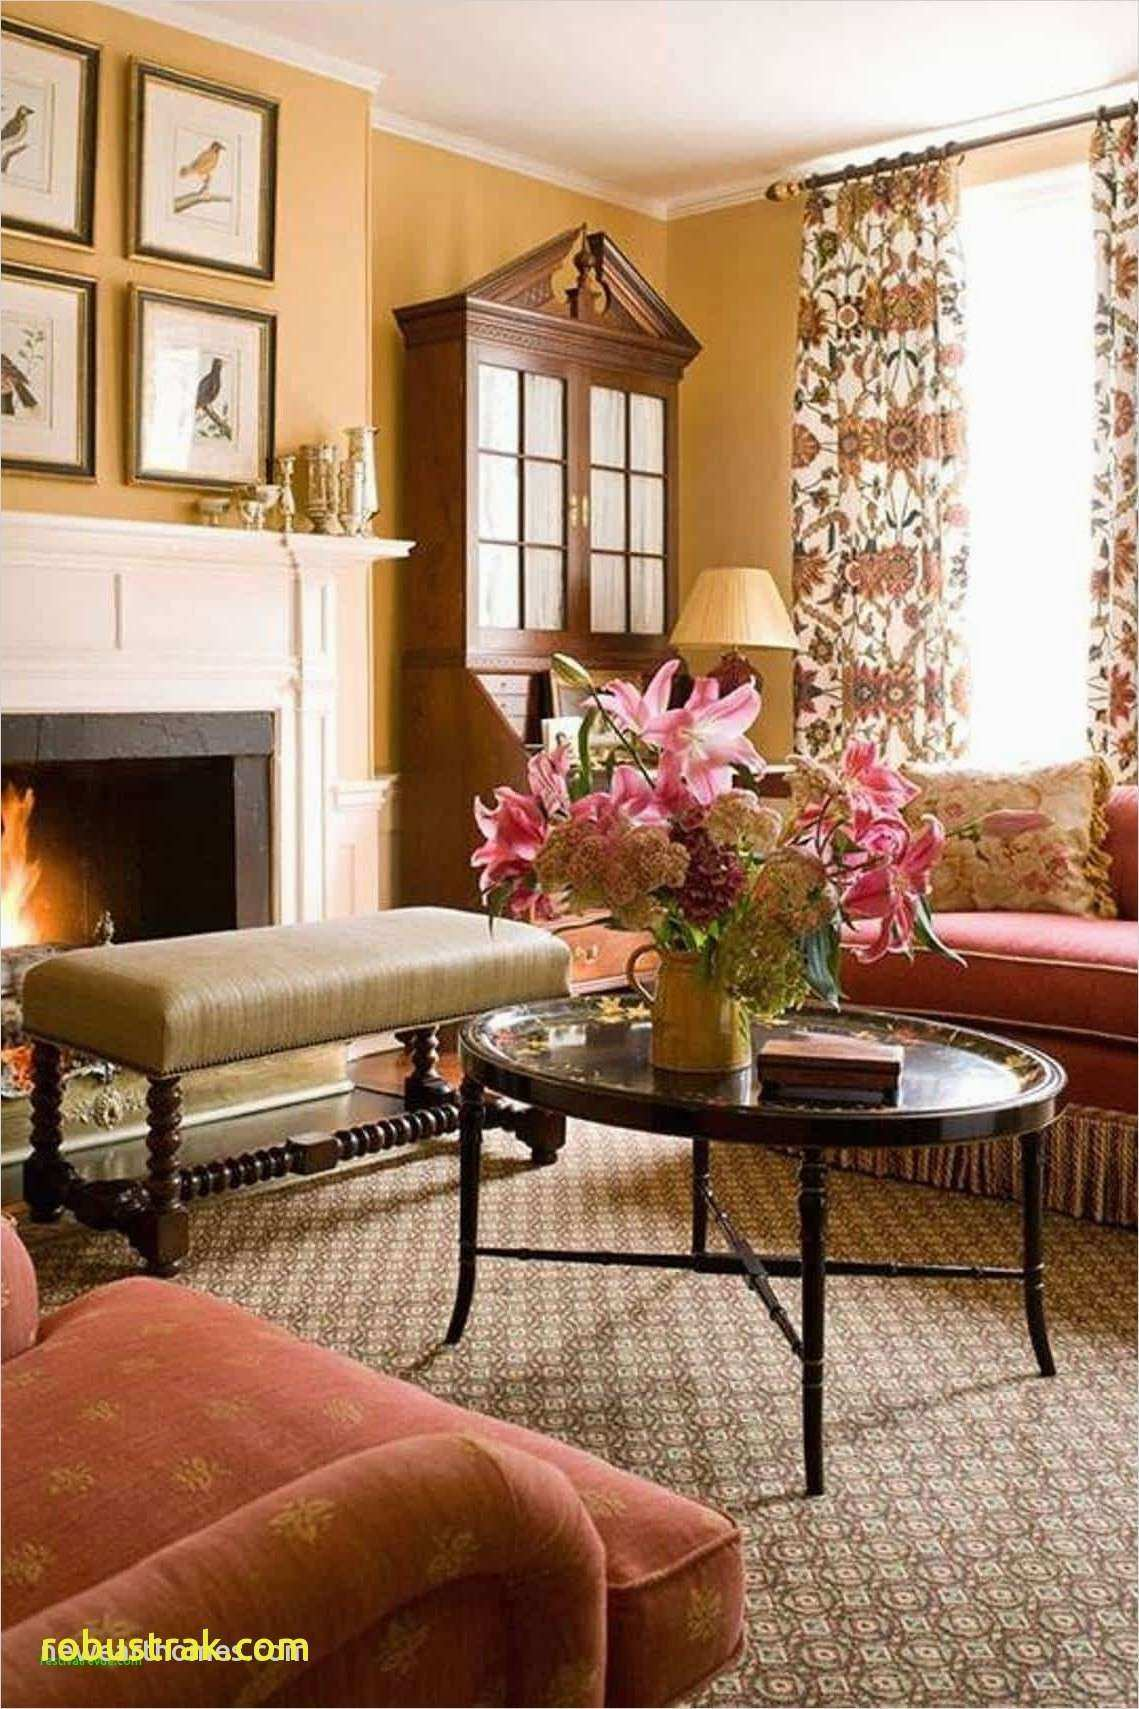 Home Decor Ideas for Bedroom Luxury Awesome Wall Decor Ideas for